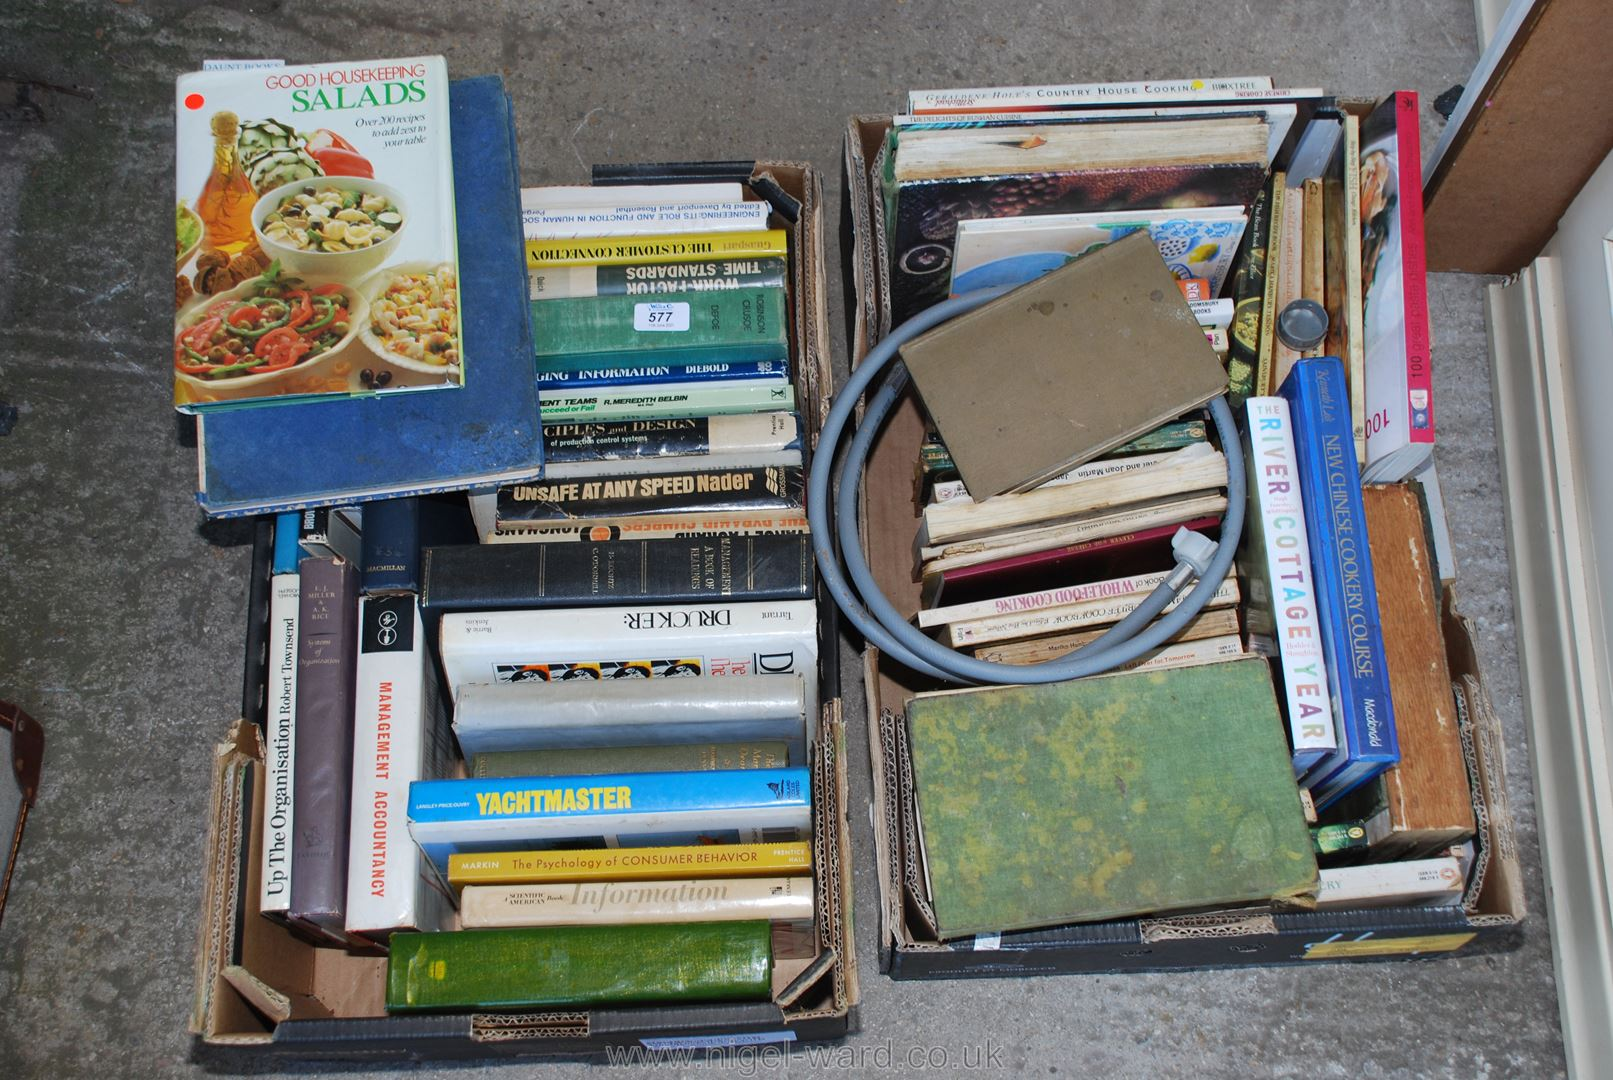 Two boxes of cookery books, novels etc.